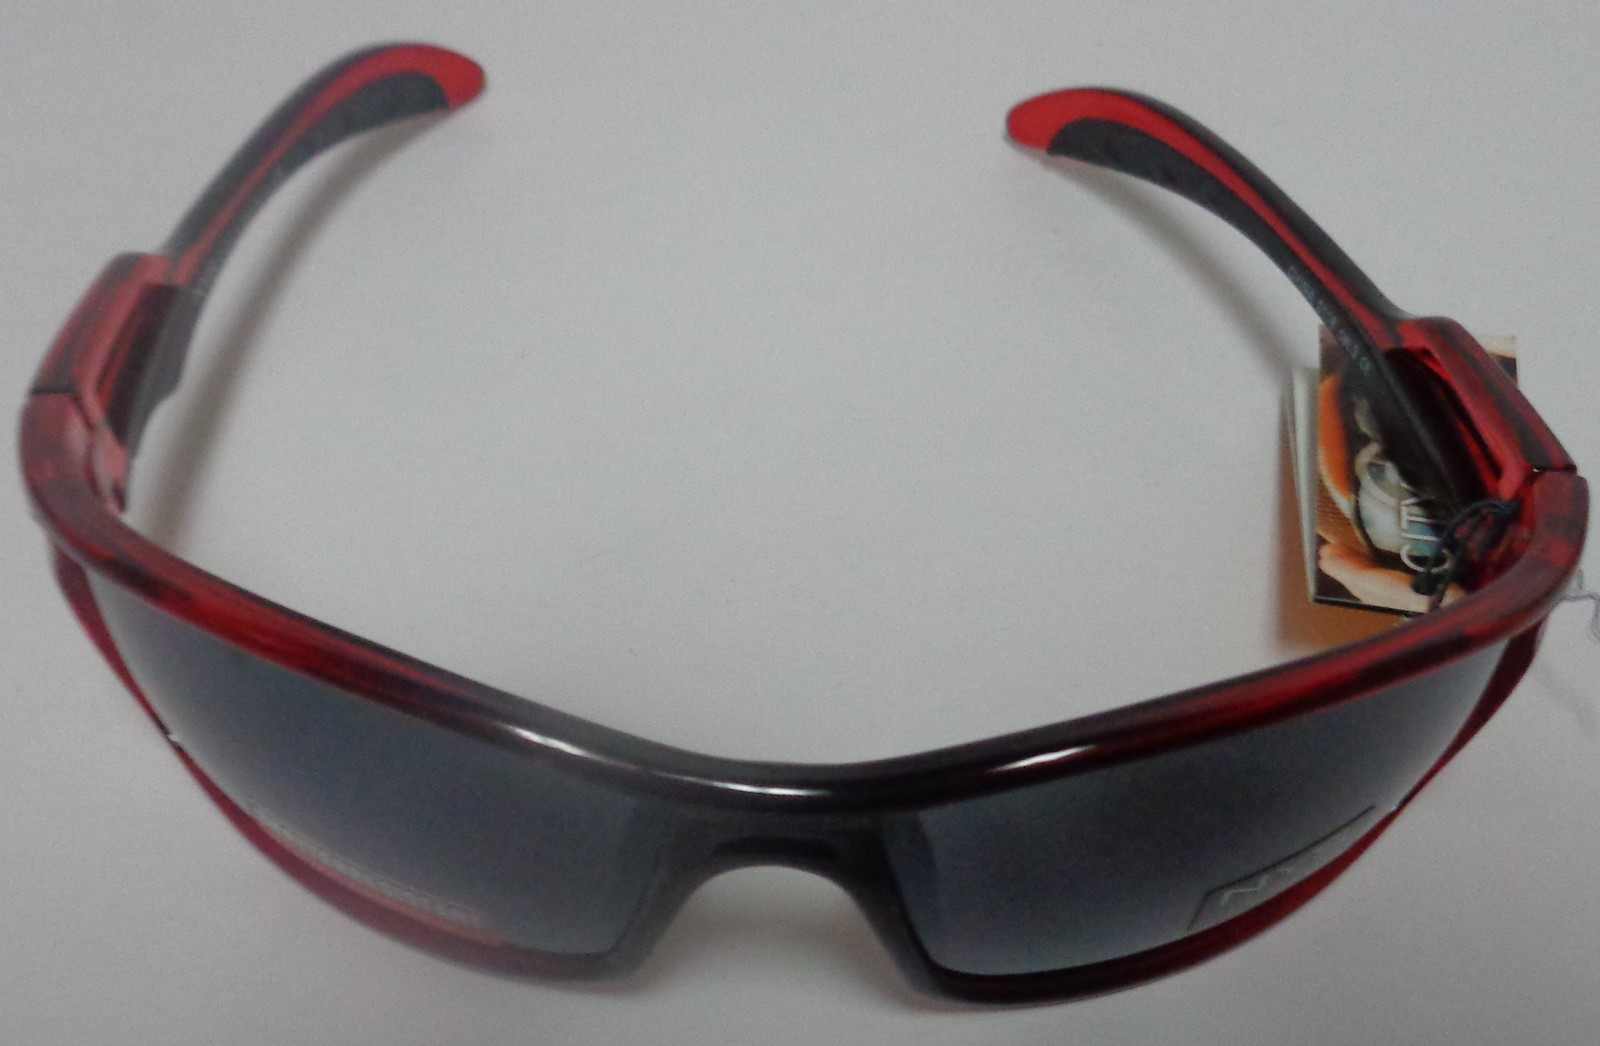 City Shades Sport Shatter Resistant Sunglasses Red Black NWT